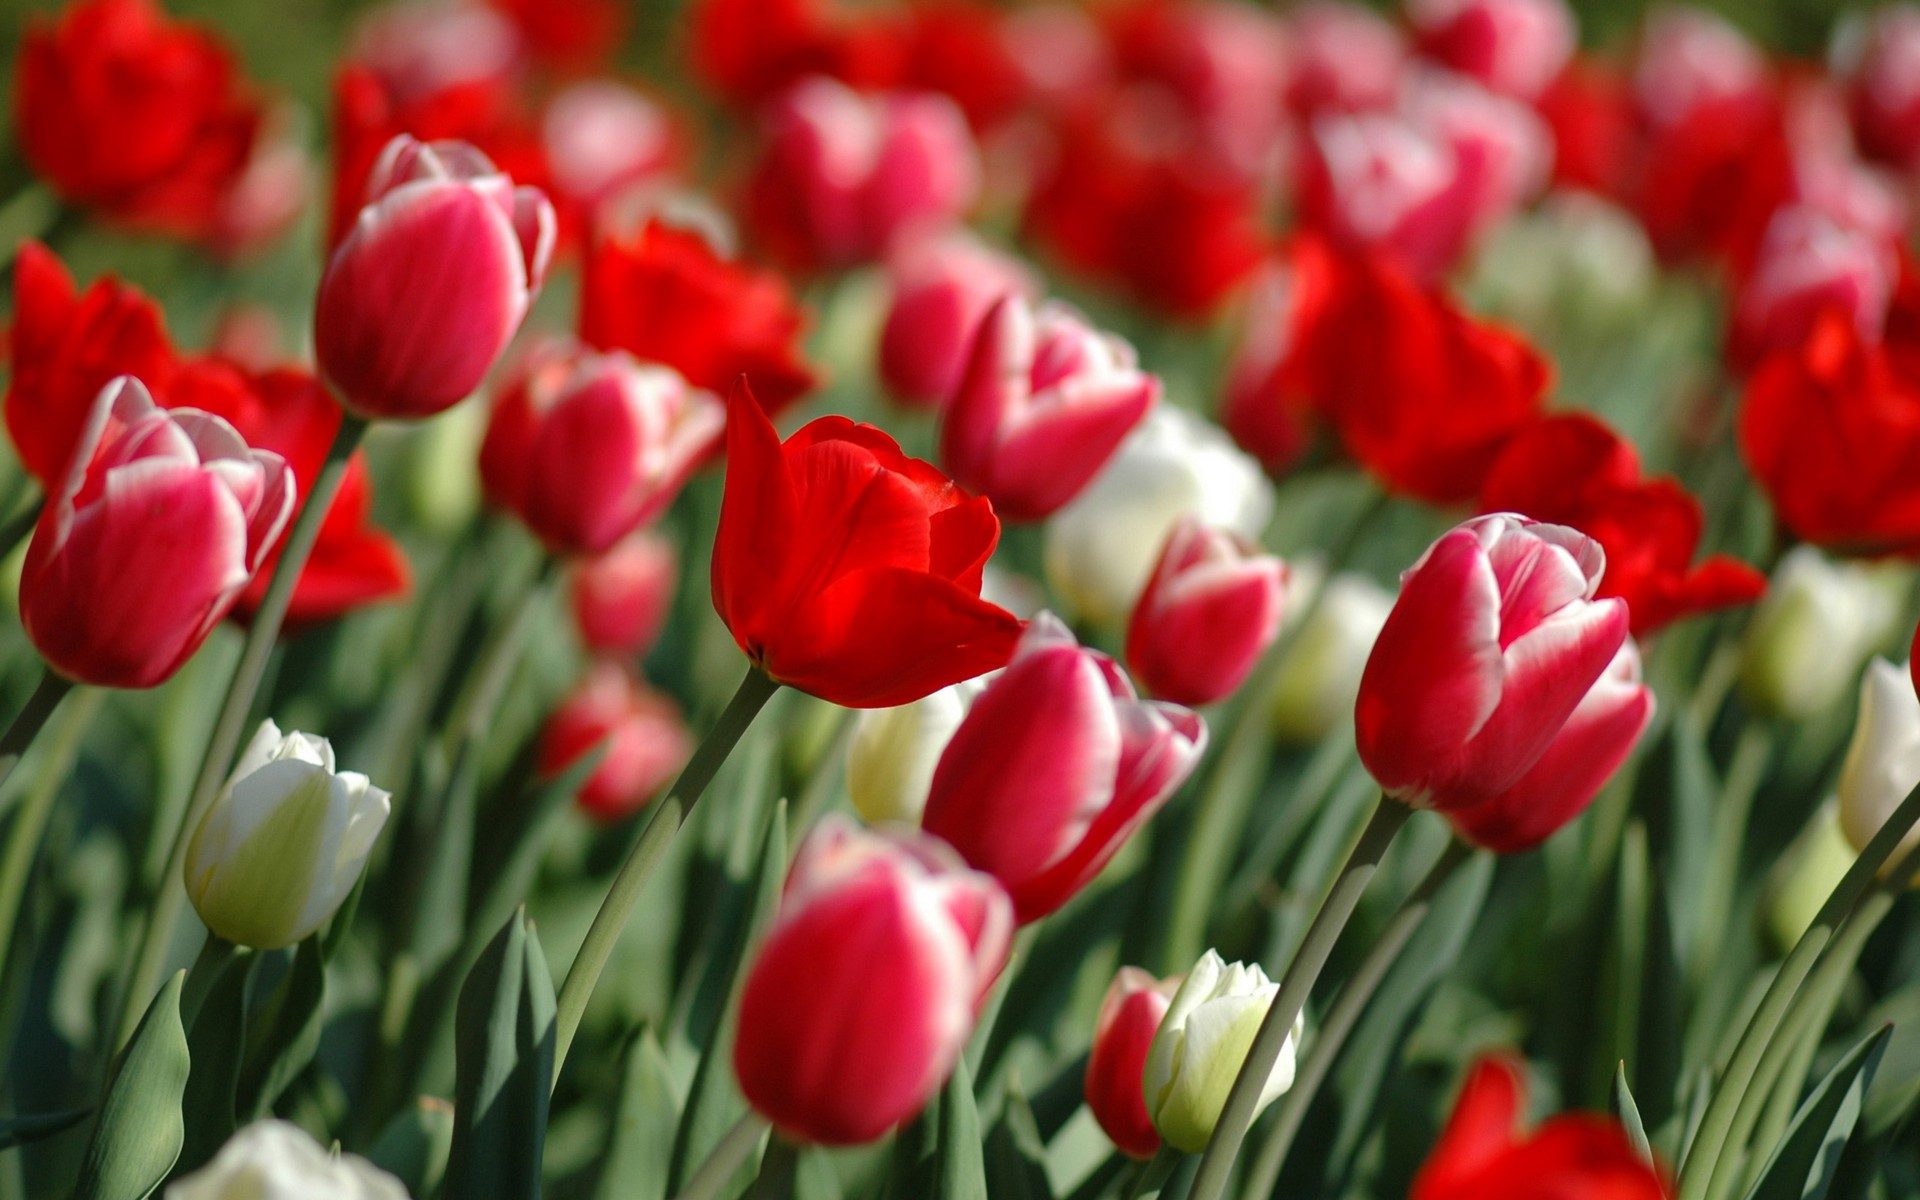 Hd wallpaper spring - Red Tulips In Spring Wallpapers Hd Wallpapers